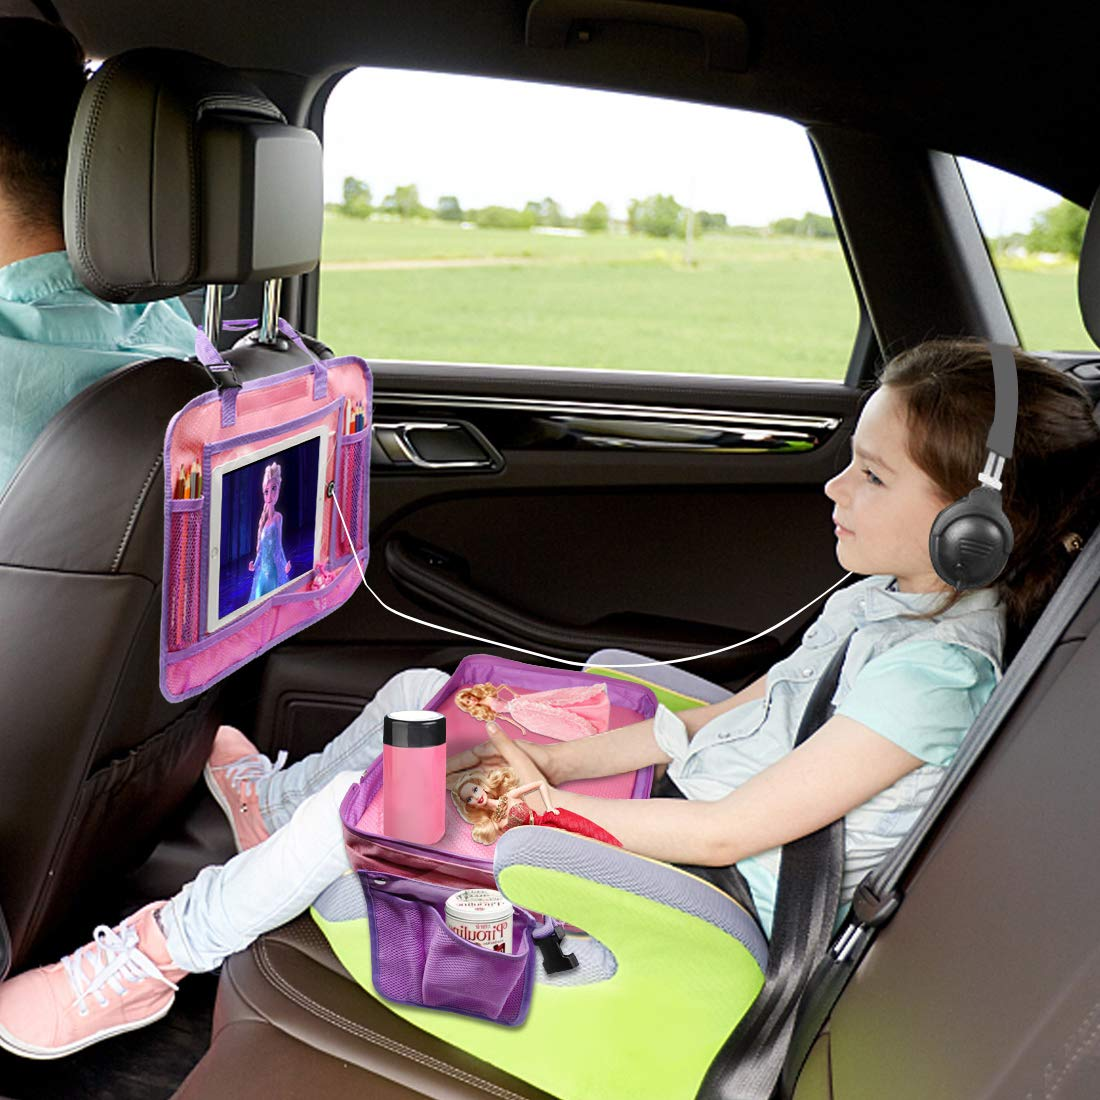 """Backseat Storage Organizer Pink 17/""""x13/"""" Snacks and Play -Great for Activity Kids Travel Tray-4 in 1 Car Seat Travel Play Tray Carry Bag and iPad /& Tablet Holder All in One-Toddlers Lap Tray"""